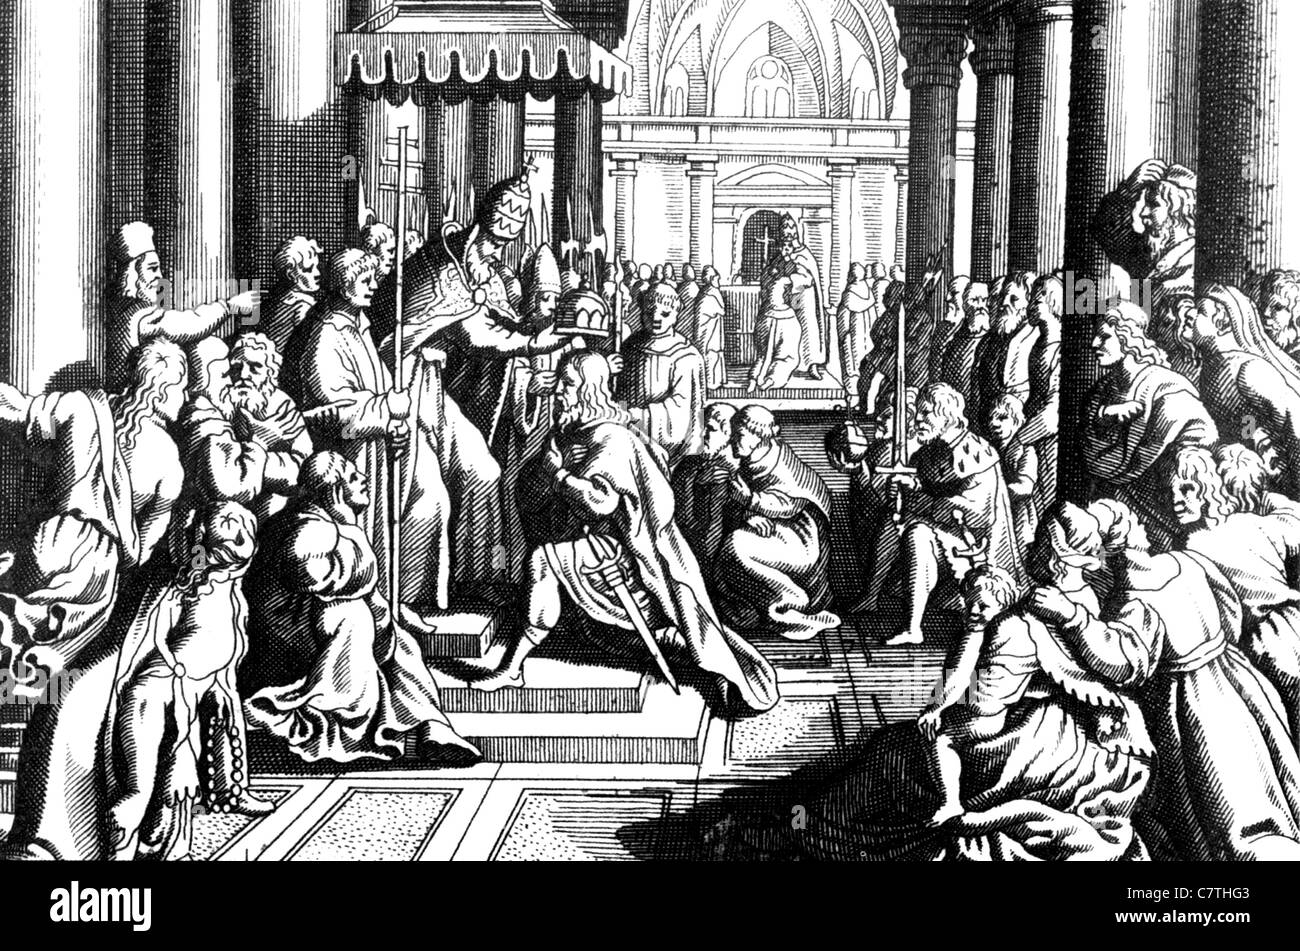 CORONATION OF CHARLEMAGNE at the Roman Council of 800 AD in an 18th century engraving - Stock Image